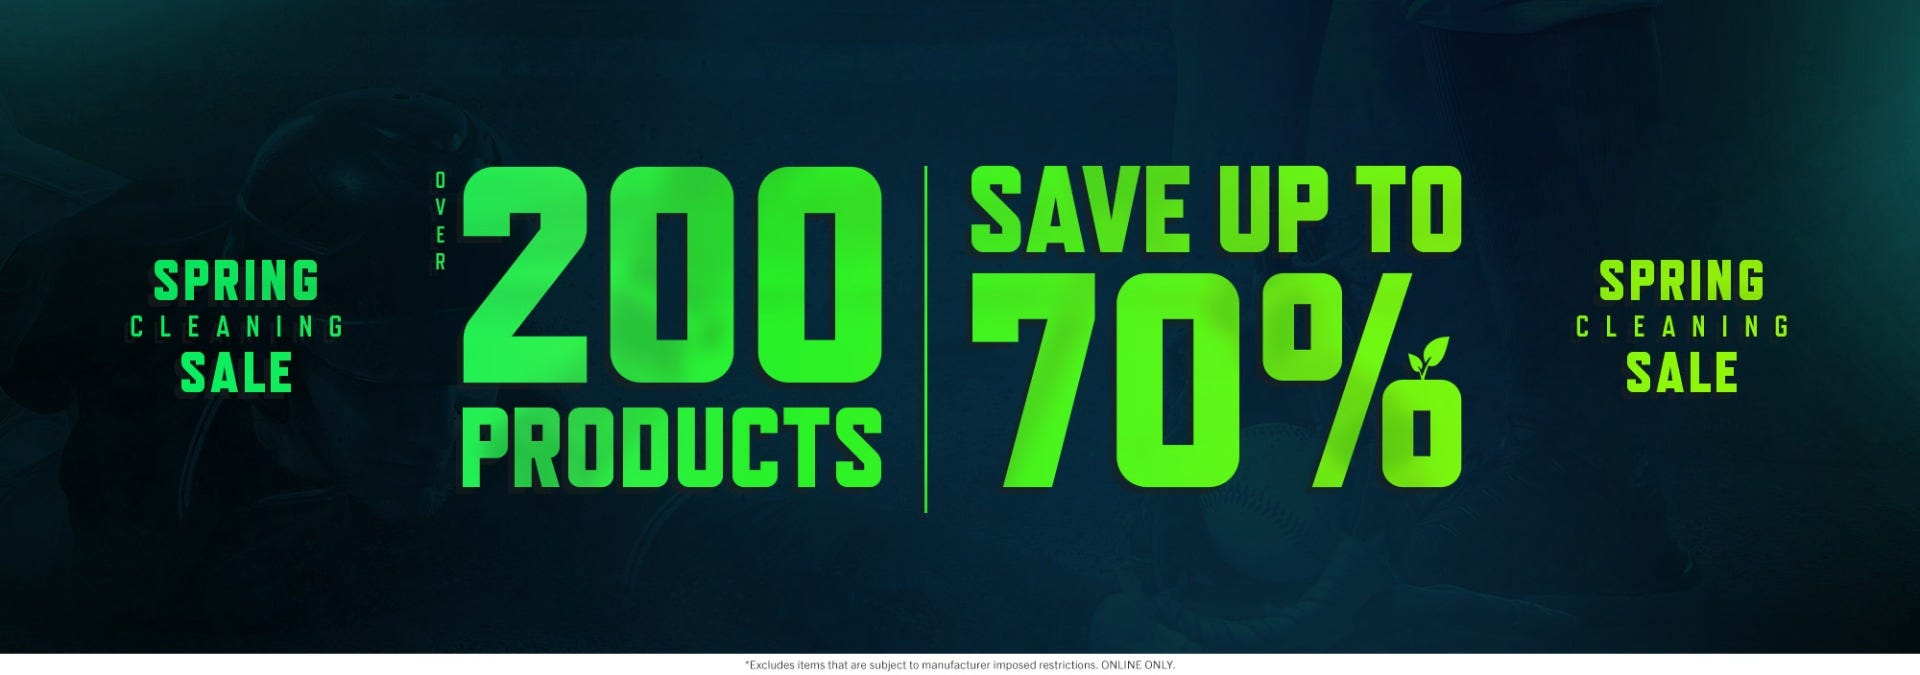 Spring Cleaning Sale - Take advantage of major savings on over 200 products